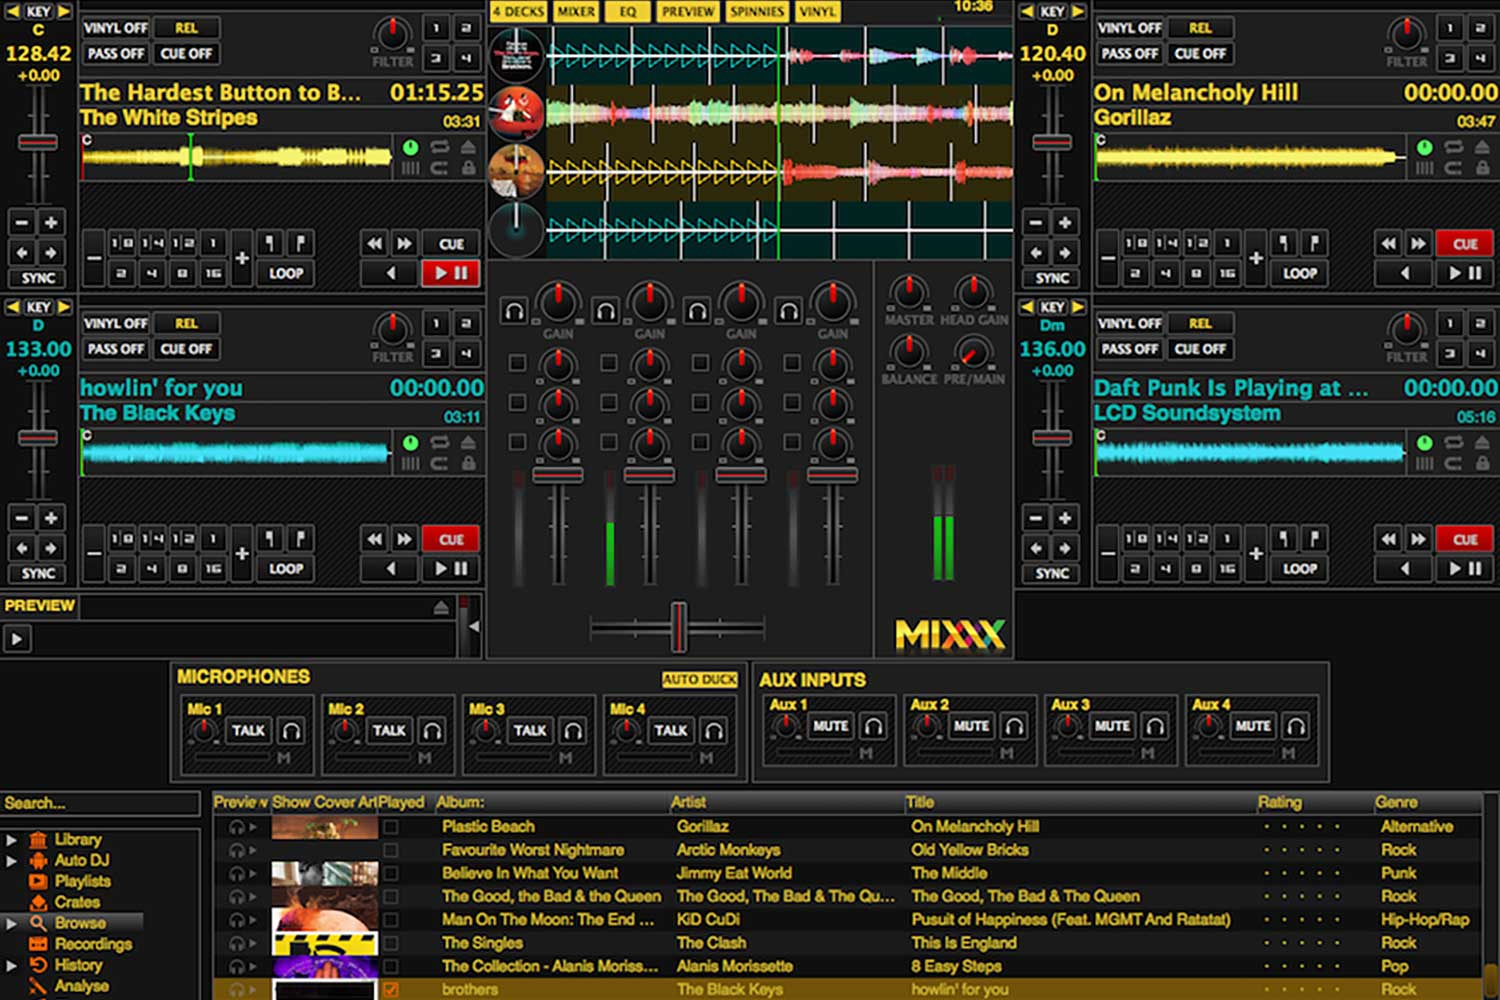 Mixxx Setup for Live Online Radio Broadcast